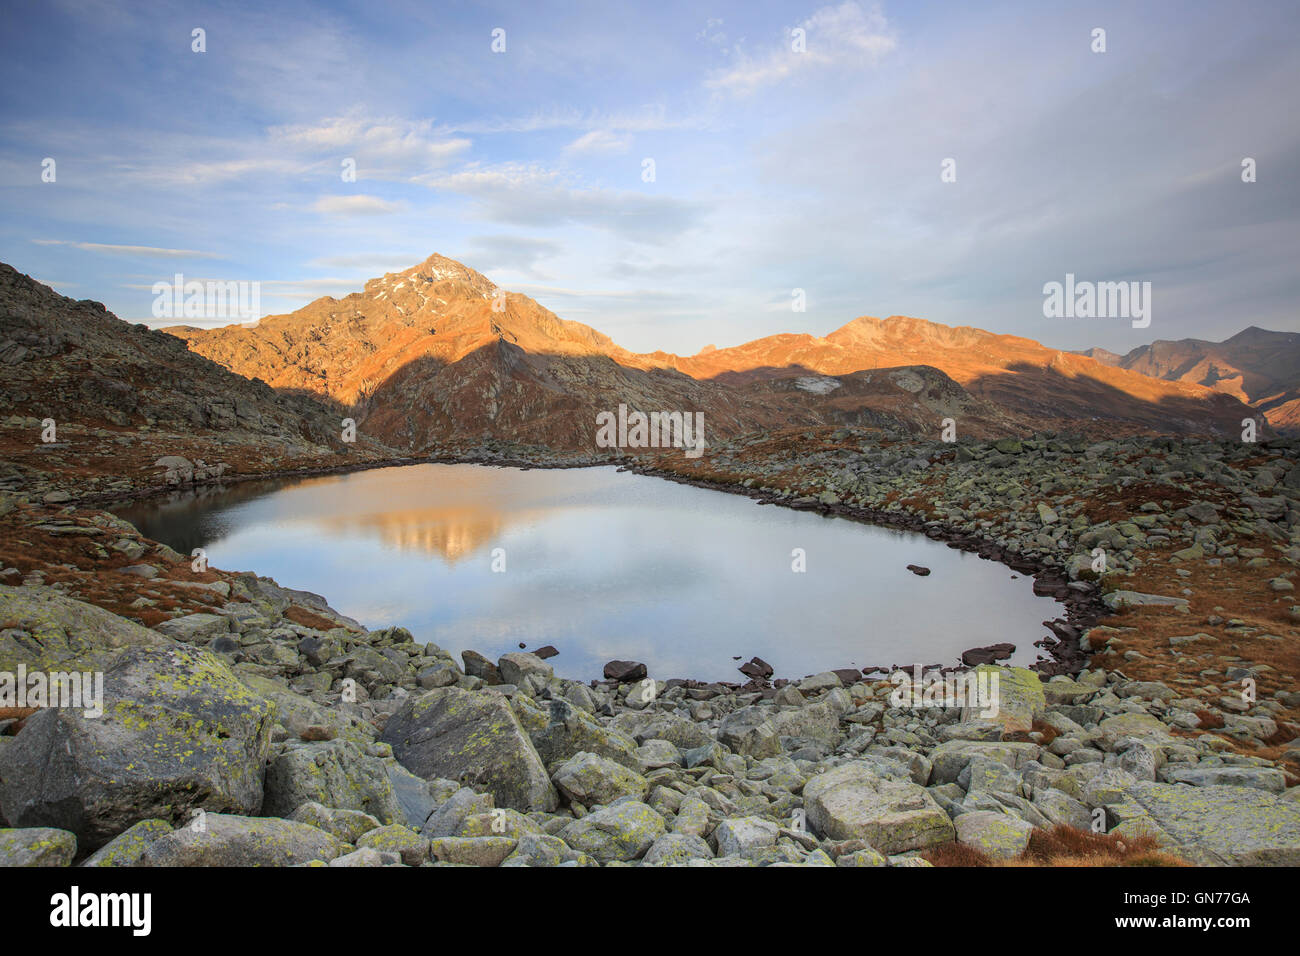 Peak Tambò reflected in Lake Bergsee at dawn Chiavenna Valley Spluga Valley Switzerland Europe - Stock Image